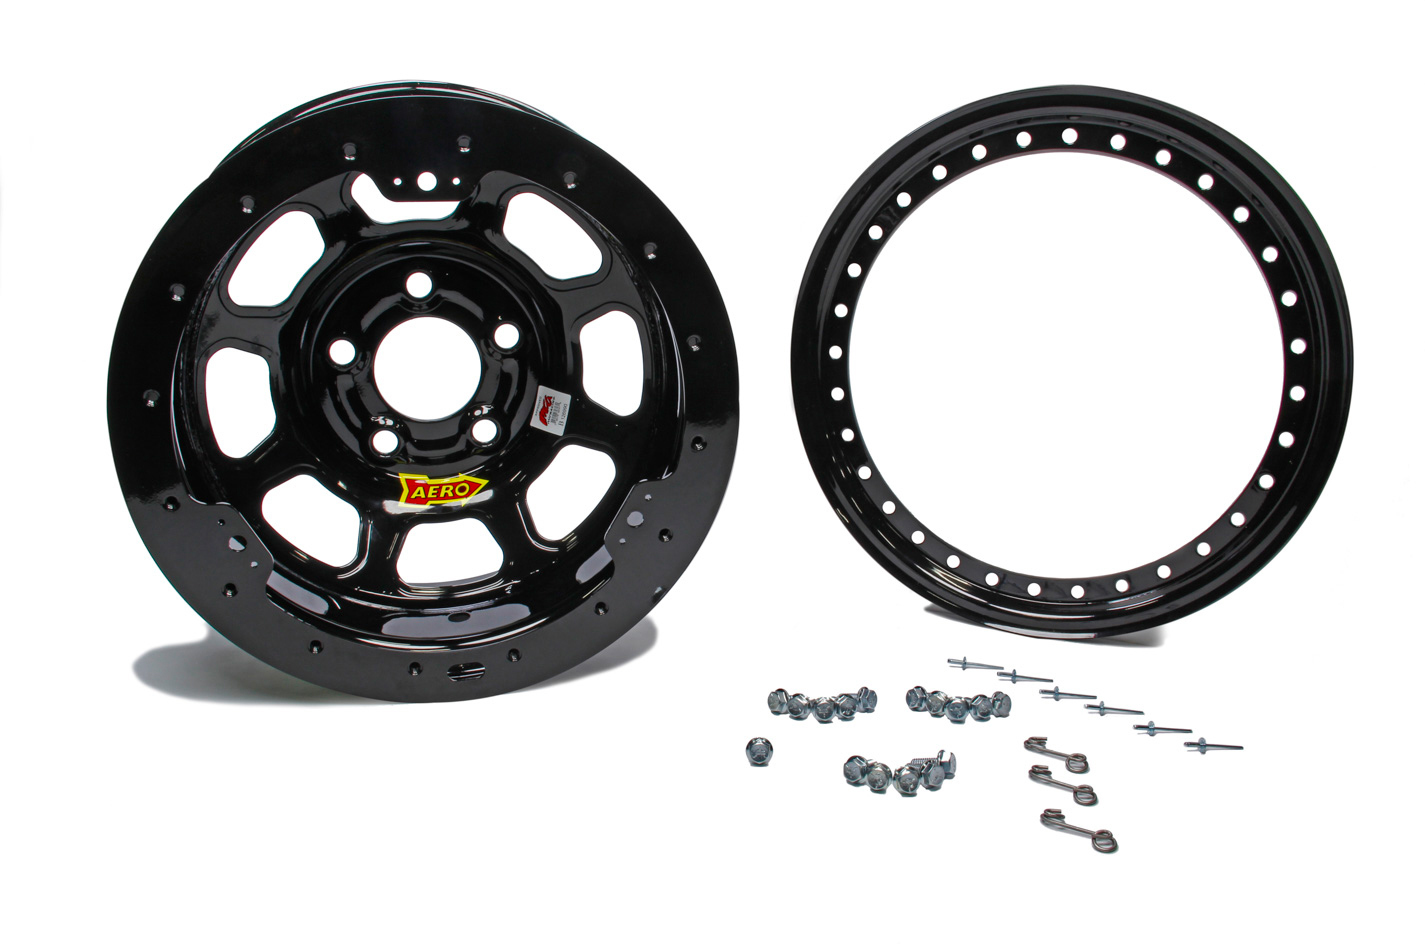 Aero Race 13x7 2in. 4.25 Black Beadlock Wheel